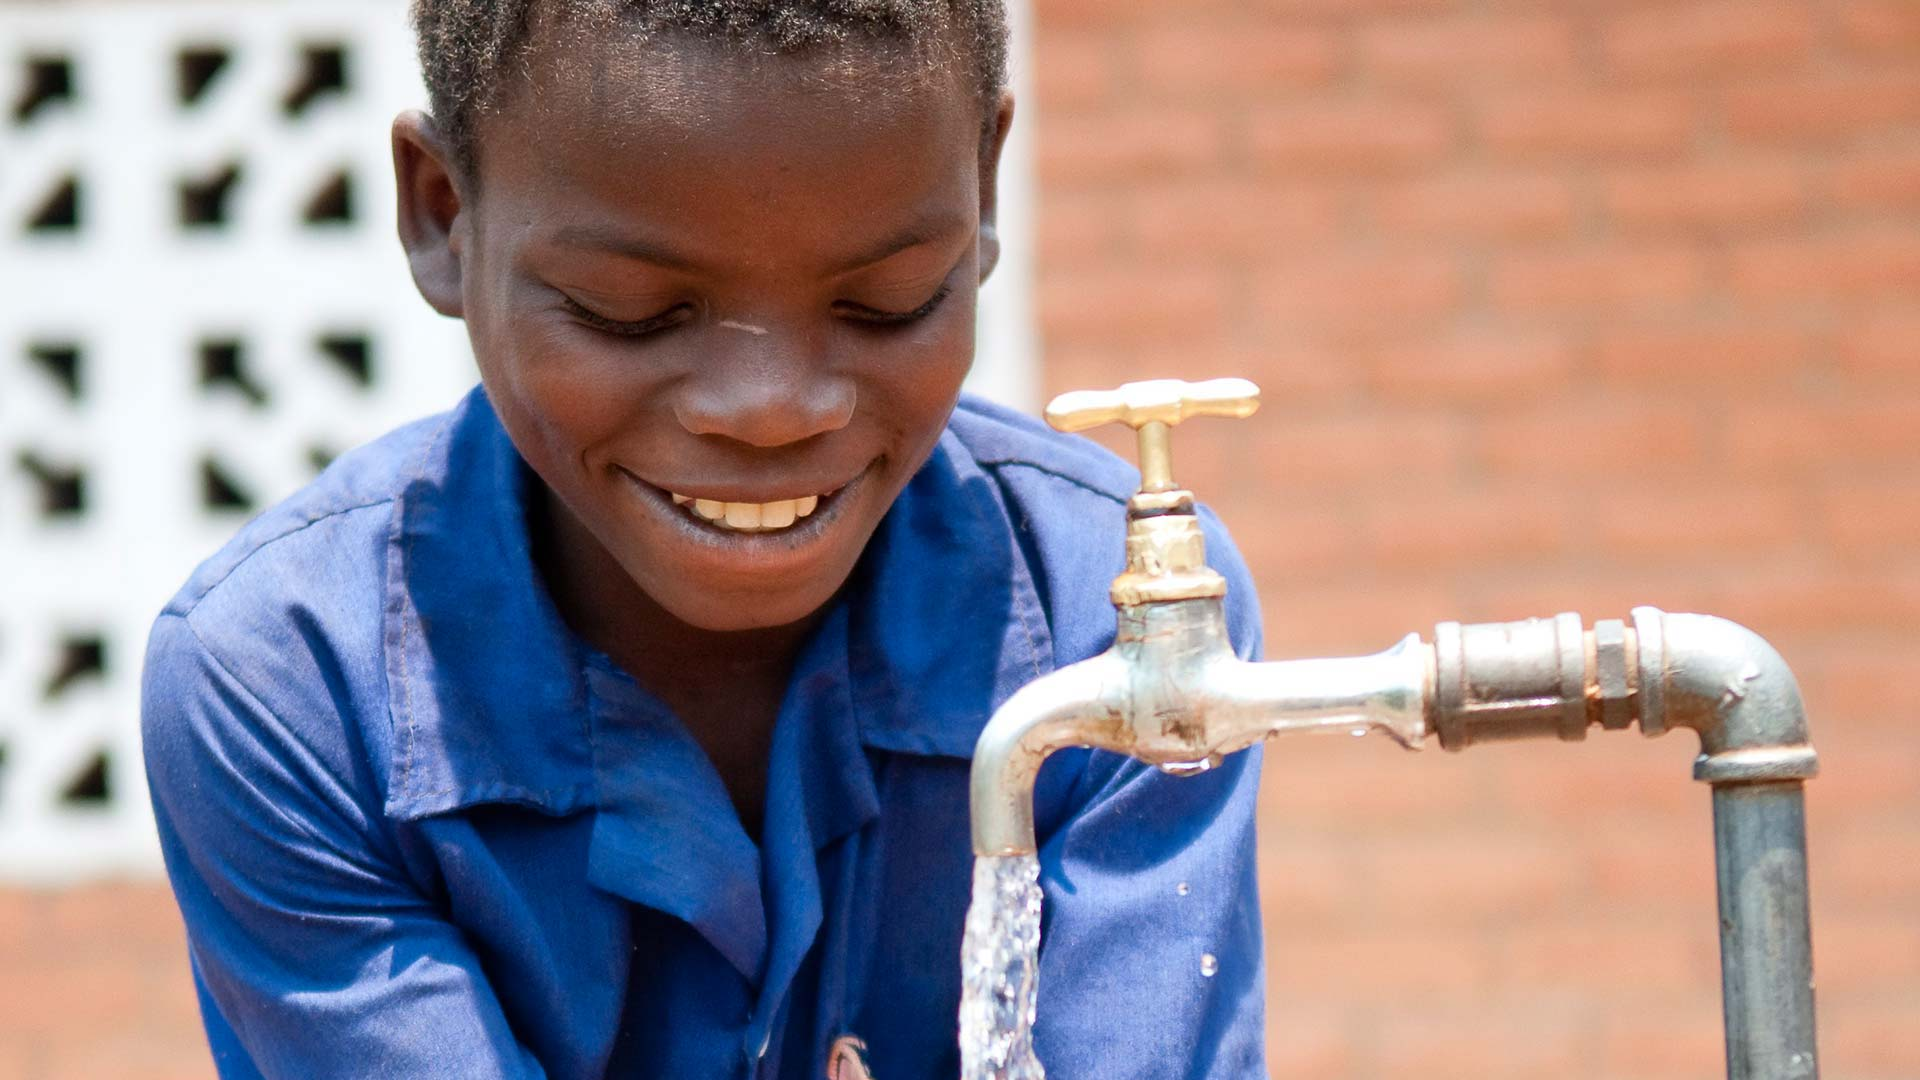 Malawian child smiling at water from a flowing tap